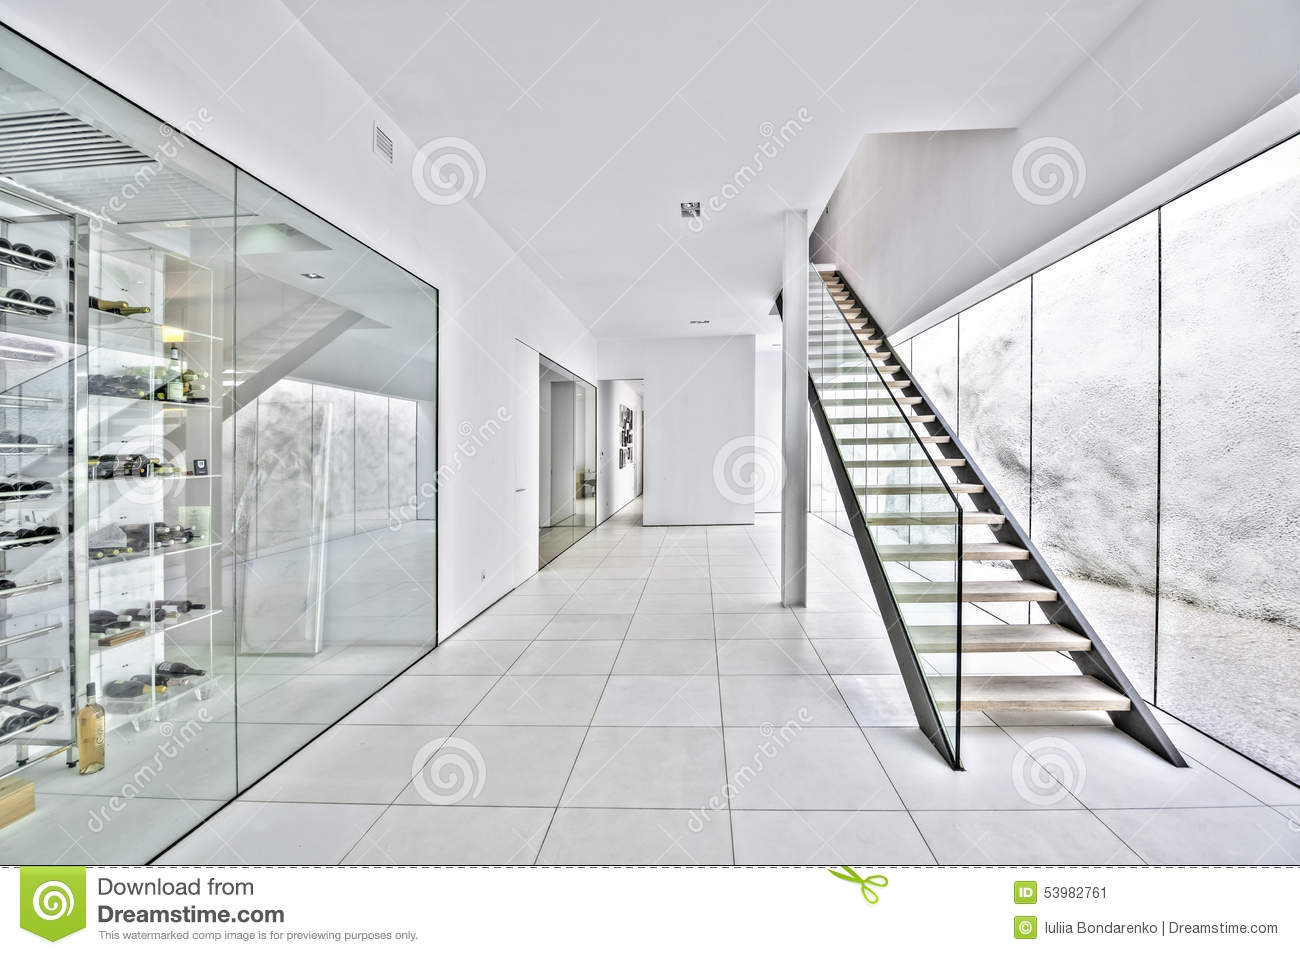 Decoration Villa Moderne Hall In The Modern Villa Stock Image Image Of Decoration 53982761